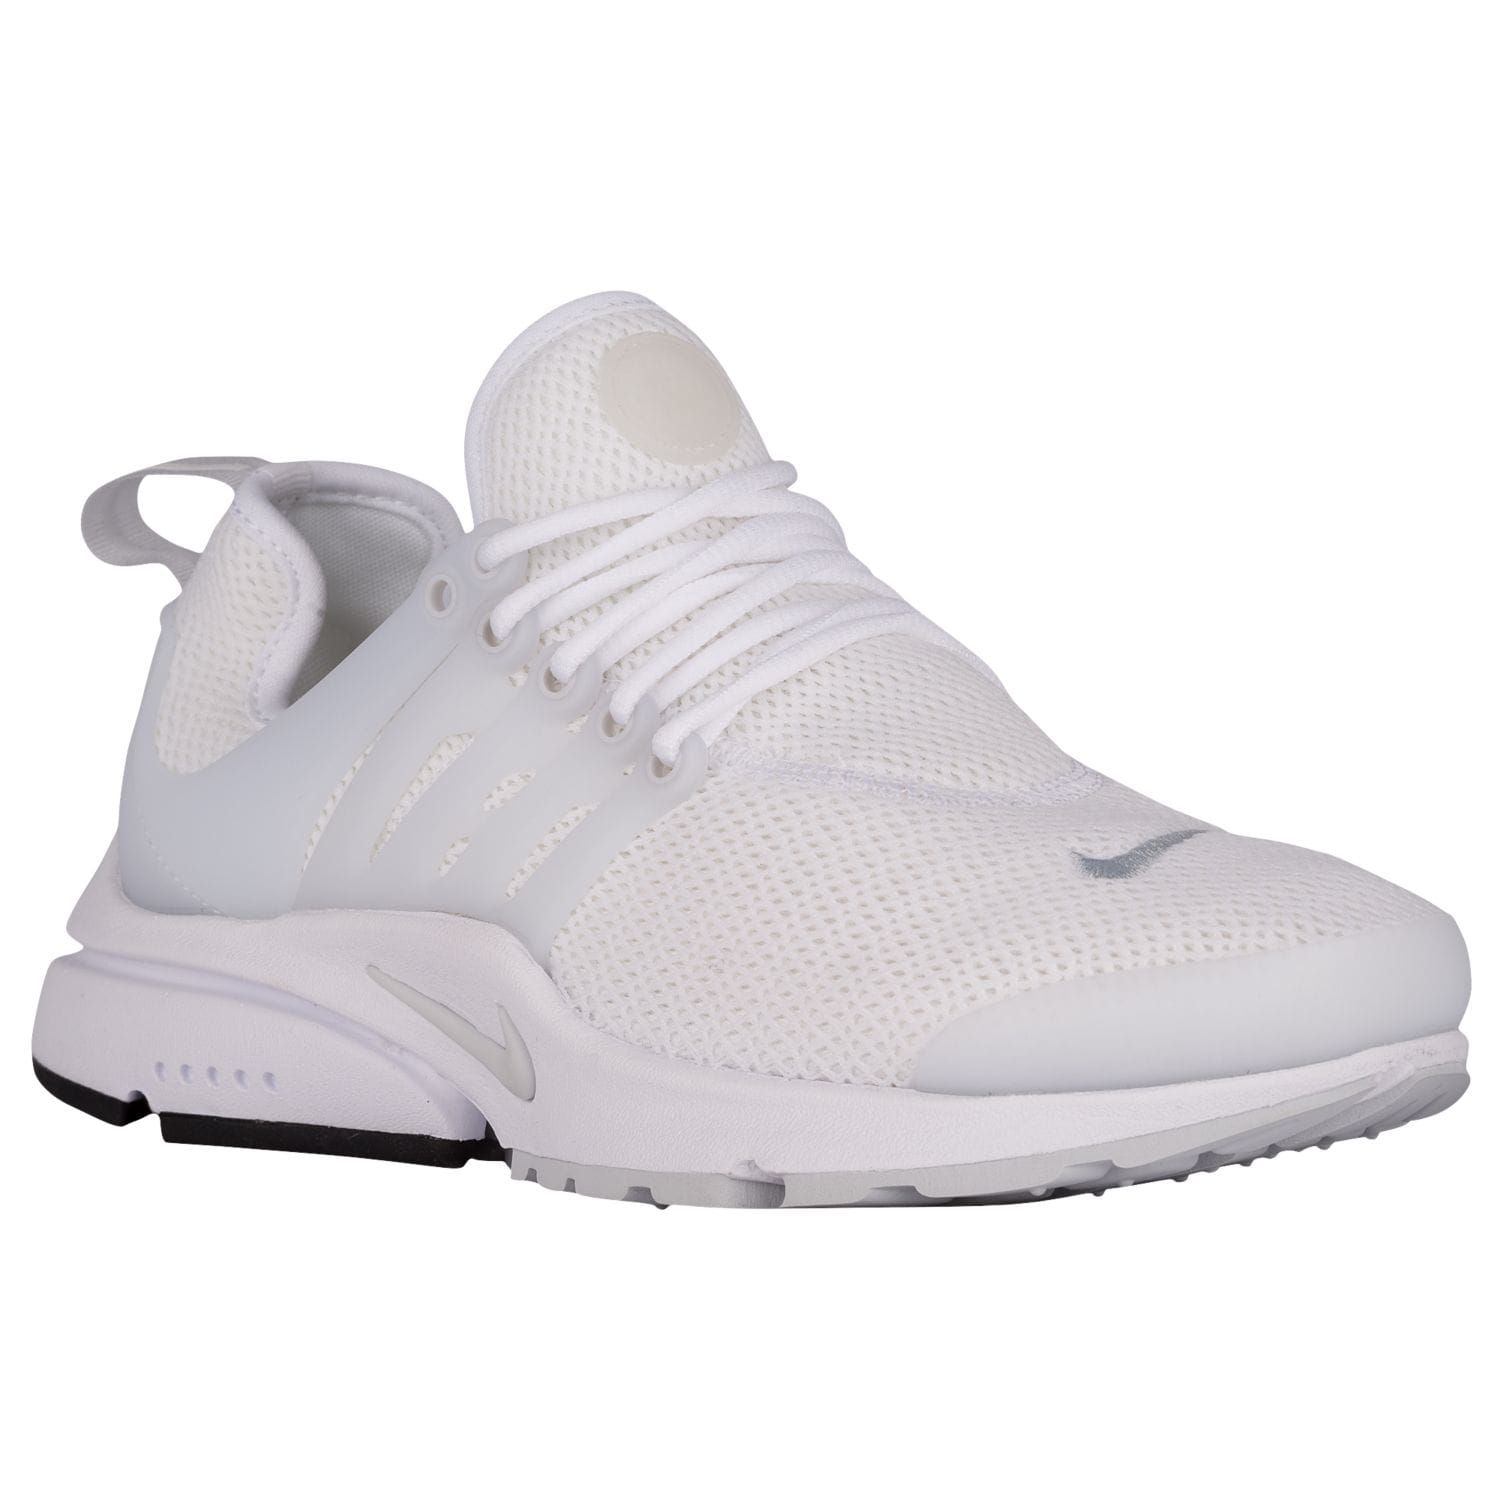 Contratista Yogur Aprovechar  Nike Air Presto - Women's | White nike shoes womens, Nike air presto woman,  Nike shoes girls